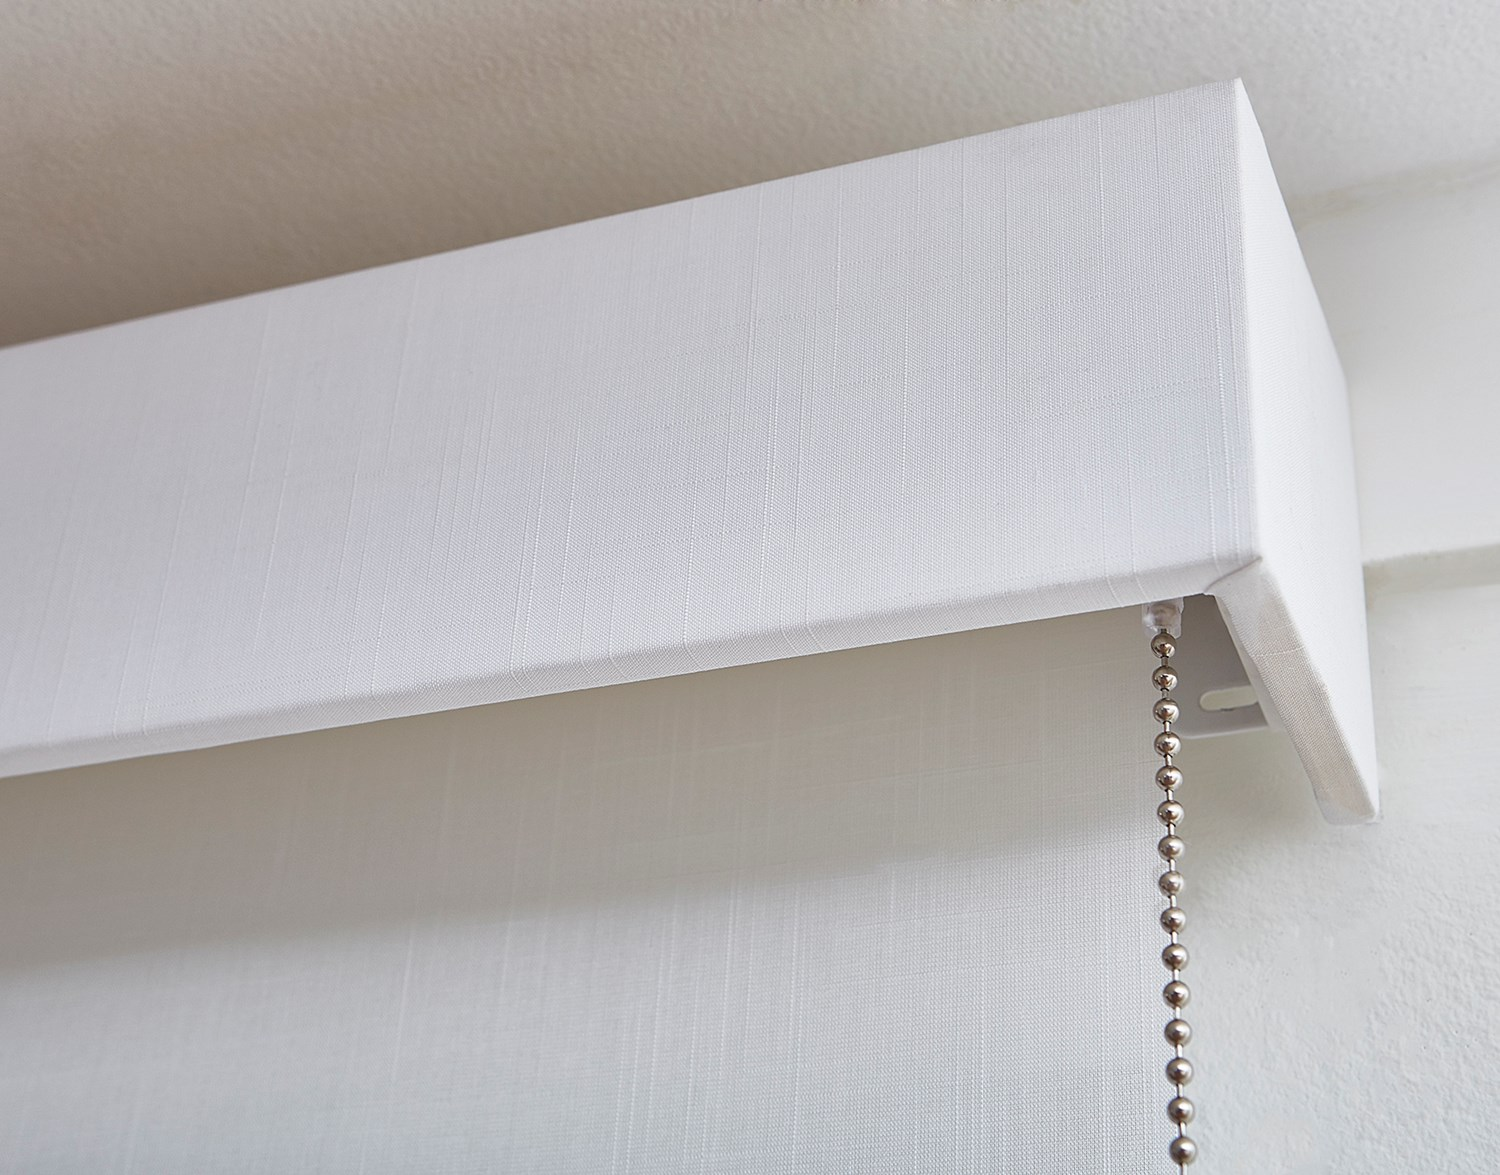 529736_SolarRollerShade_Flaxen11%PureWhite_0100_PullMotor_FabricWrapped4inCornice_A03_Grp3_Dtl_0418_Coulisse.jpg